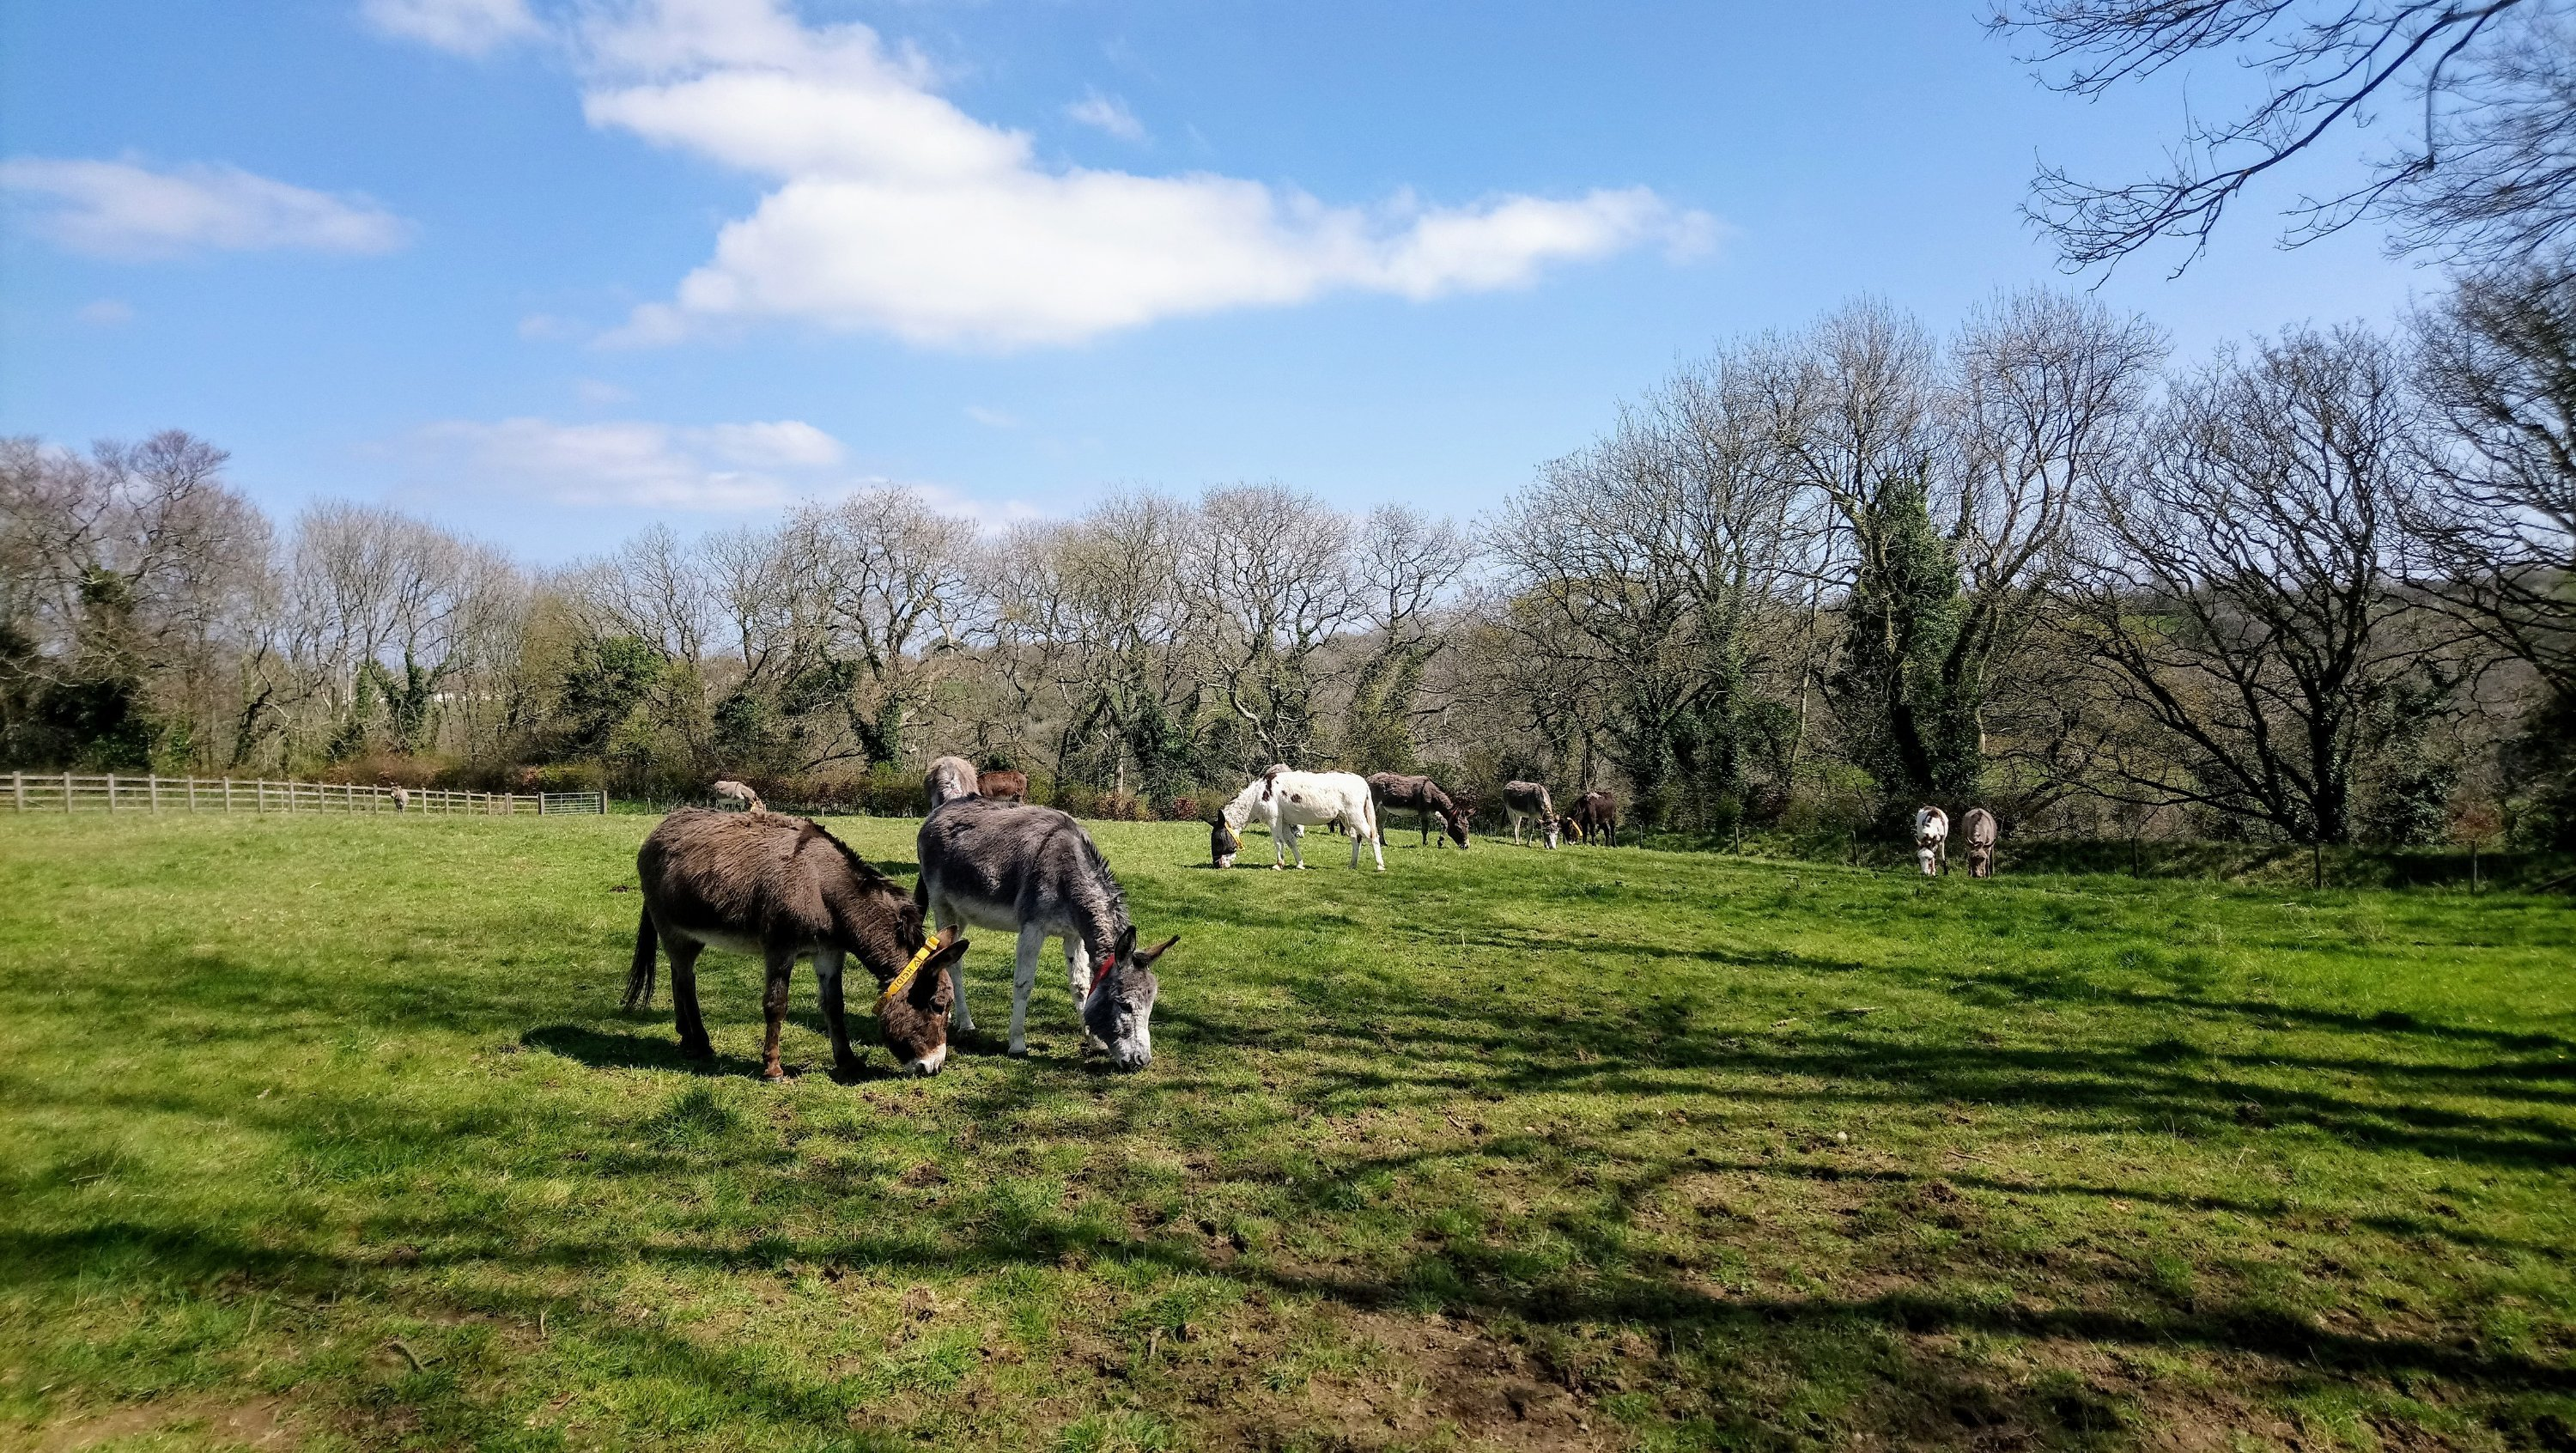 Donkeys in a field at the Sanctuary on a sunny day